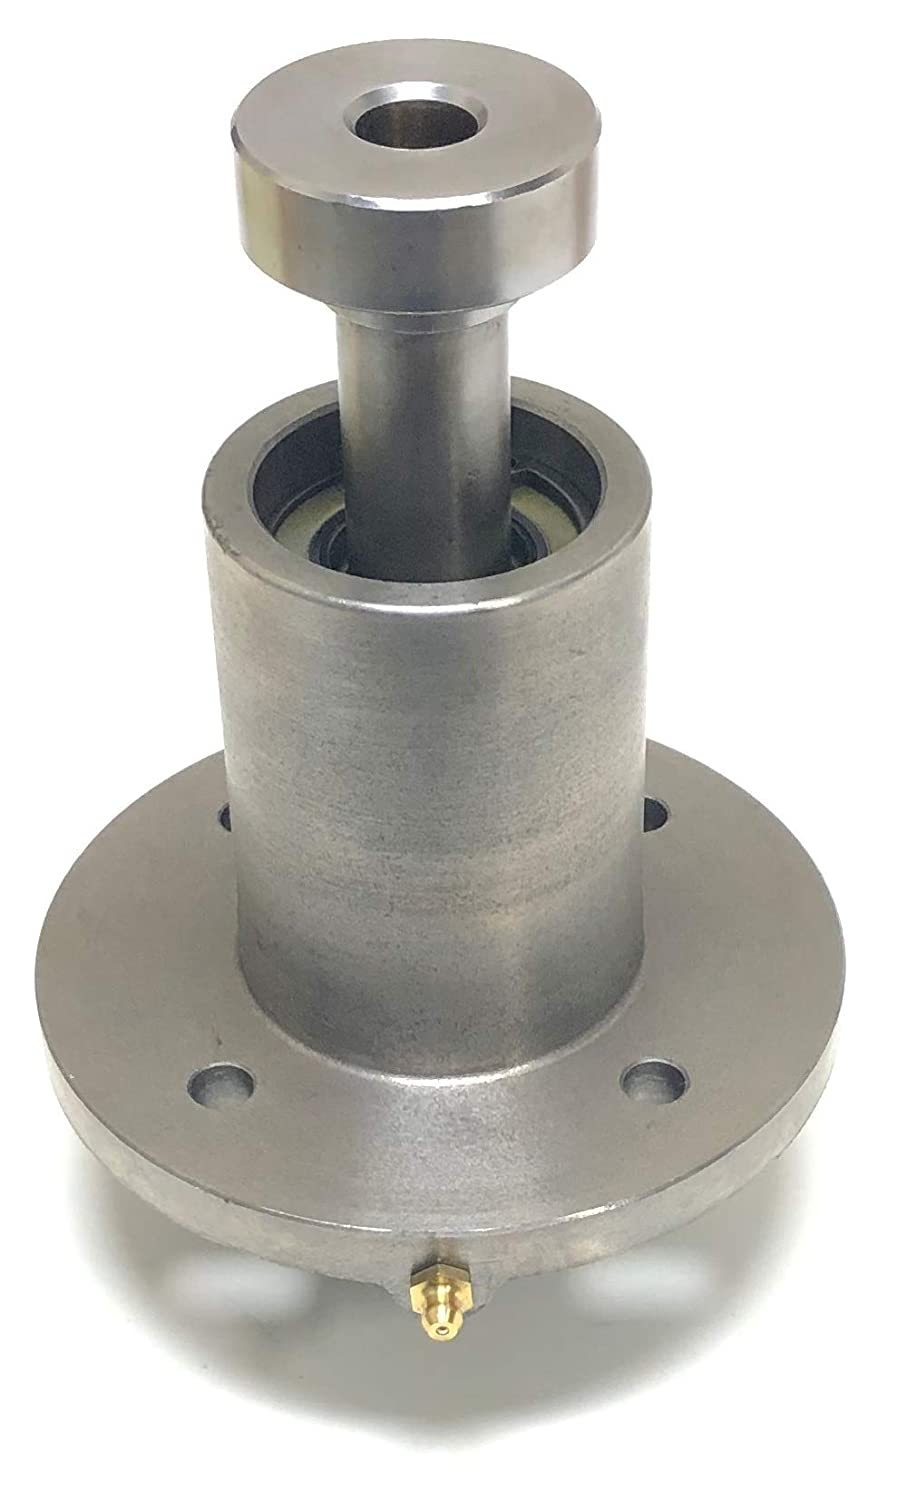 Lawn Mower Spindle Assembly Replaces DIXIE CHOPPER 10161